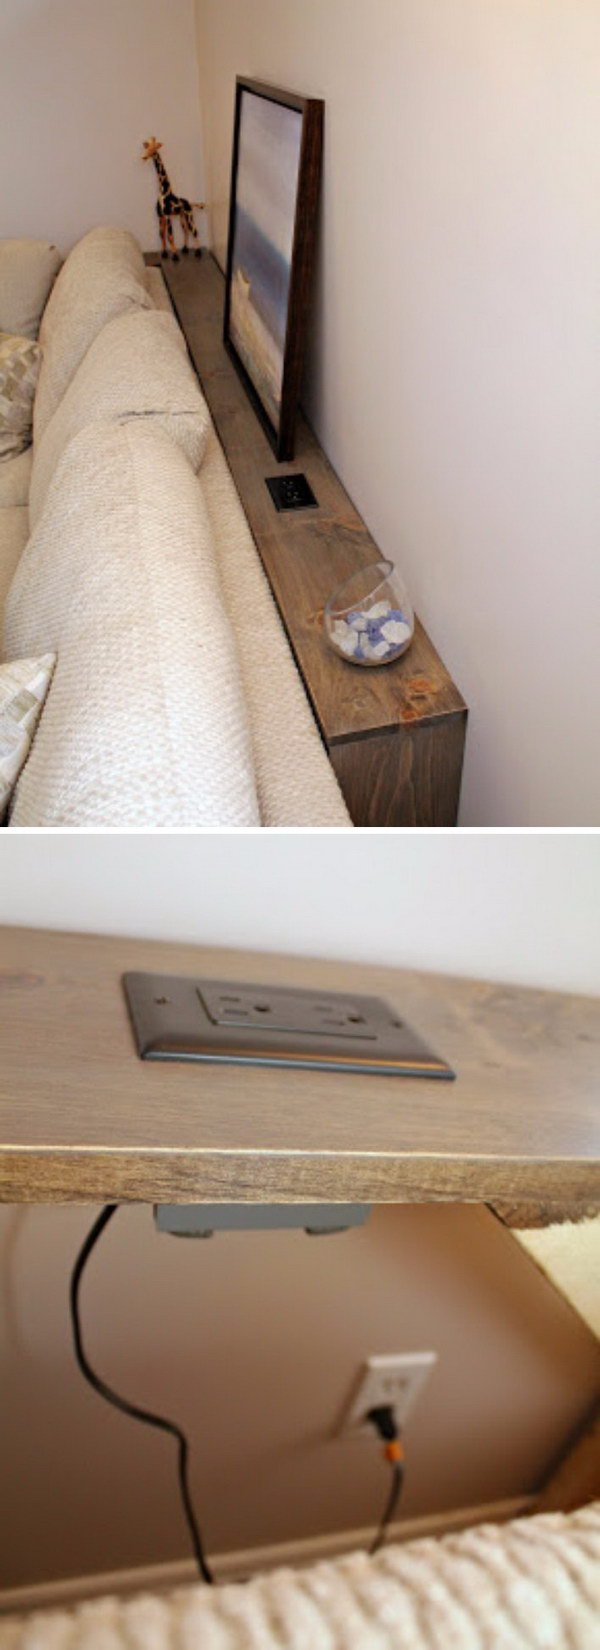 DIY Sofa Table Behind The Sofa.